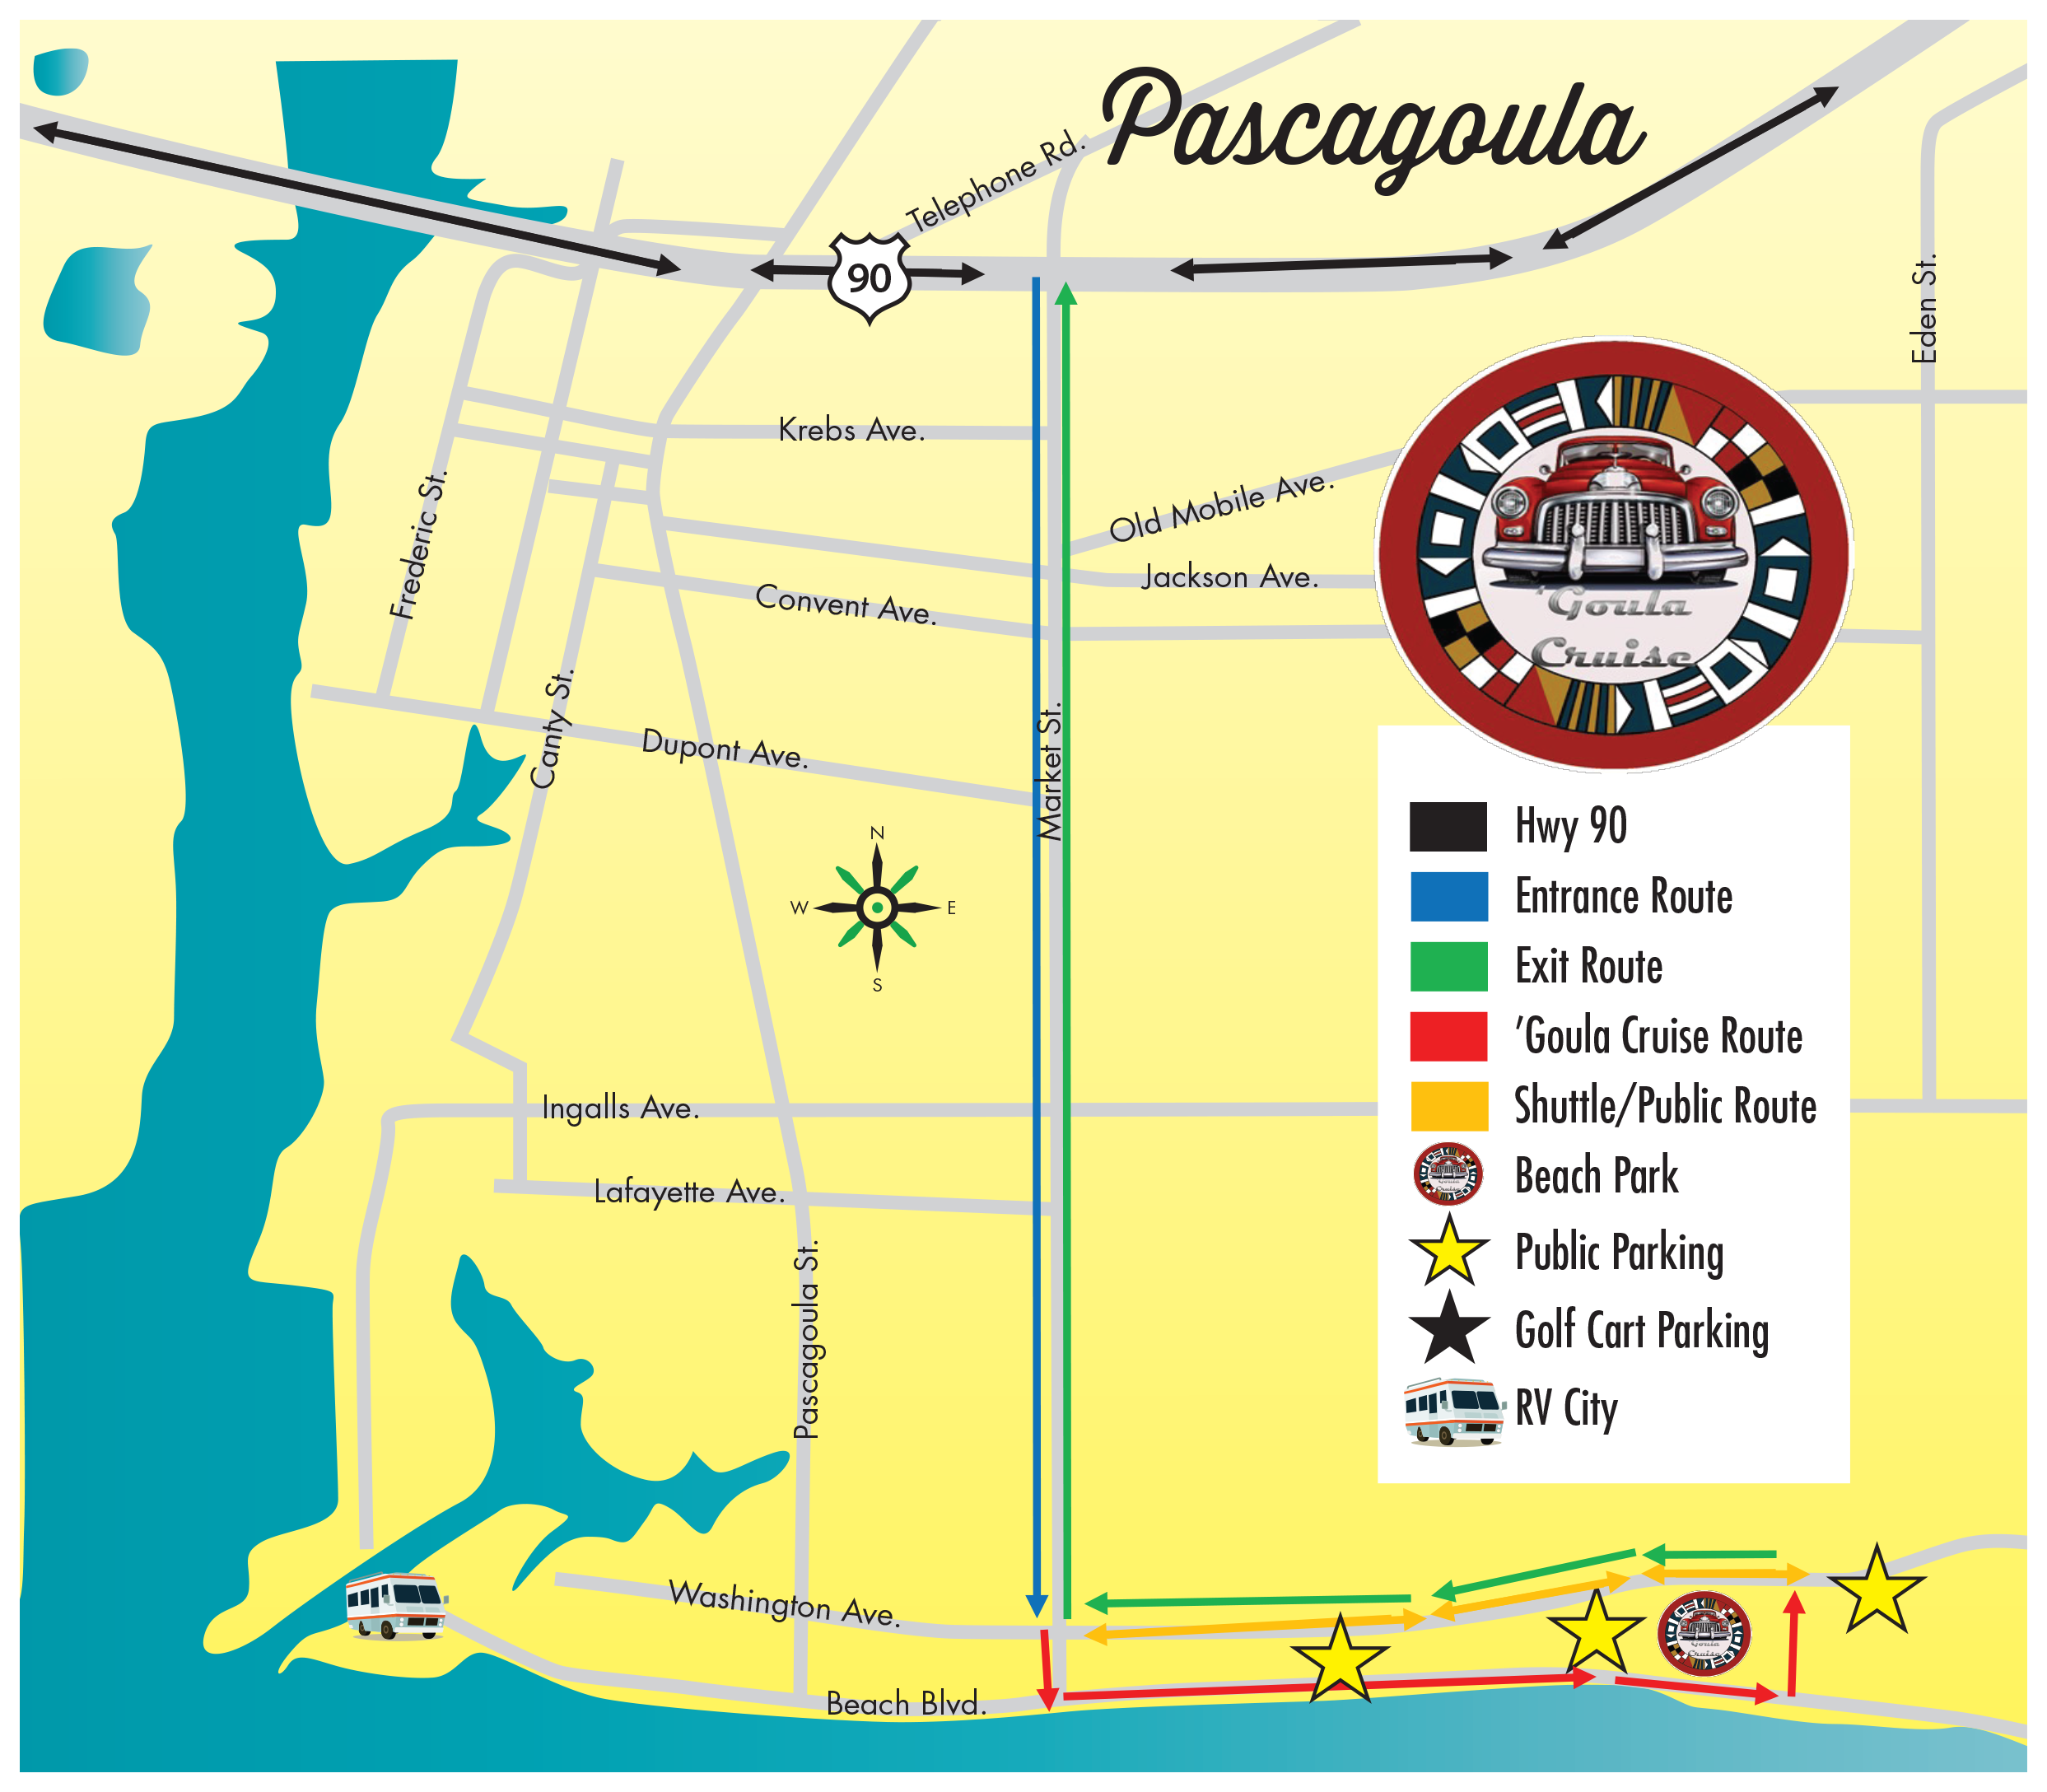 Map Pascagoula | Cruisin' The Coast on map of mississippi towns, map of mississippi lakes, map of mississippi beach, map texas coast, map of pascagoula, map of mississippi sound, map of mississippi barrier islands, map of mississippi gulf, map of gulf coastline, map of mississippi river, gulf coast, map of mississippi storm, map of mississippi delta, map of mississippi valley, map of mississippi estuary, map of mississippi only,